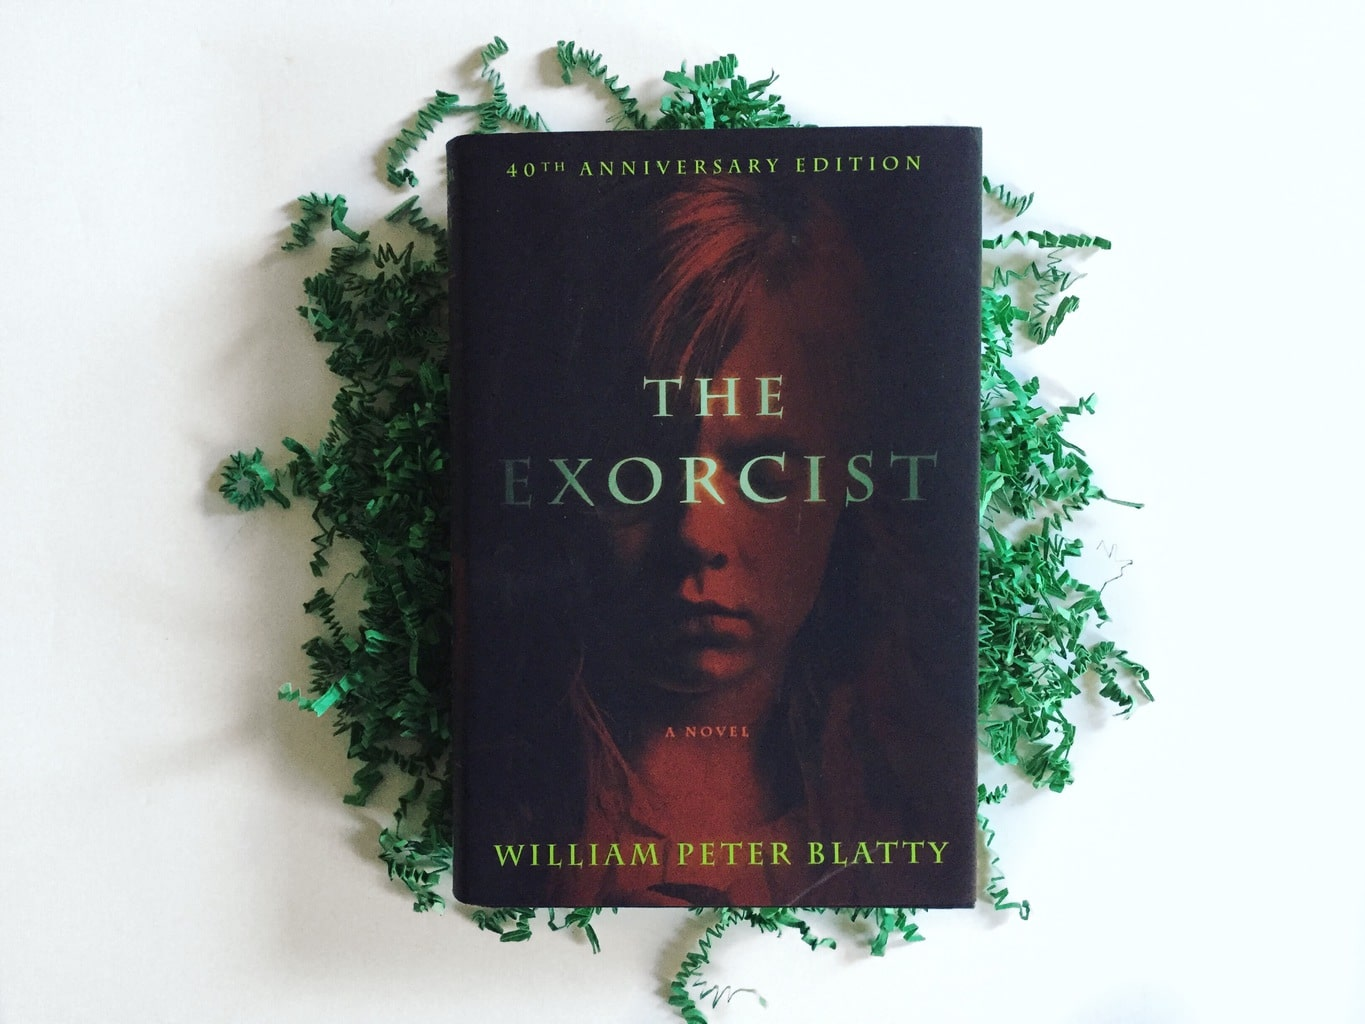 The Exorcist: A Whole Bunch of YES